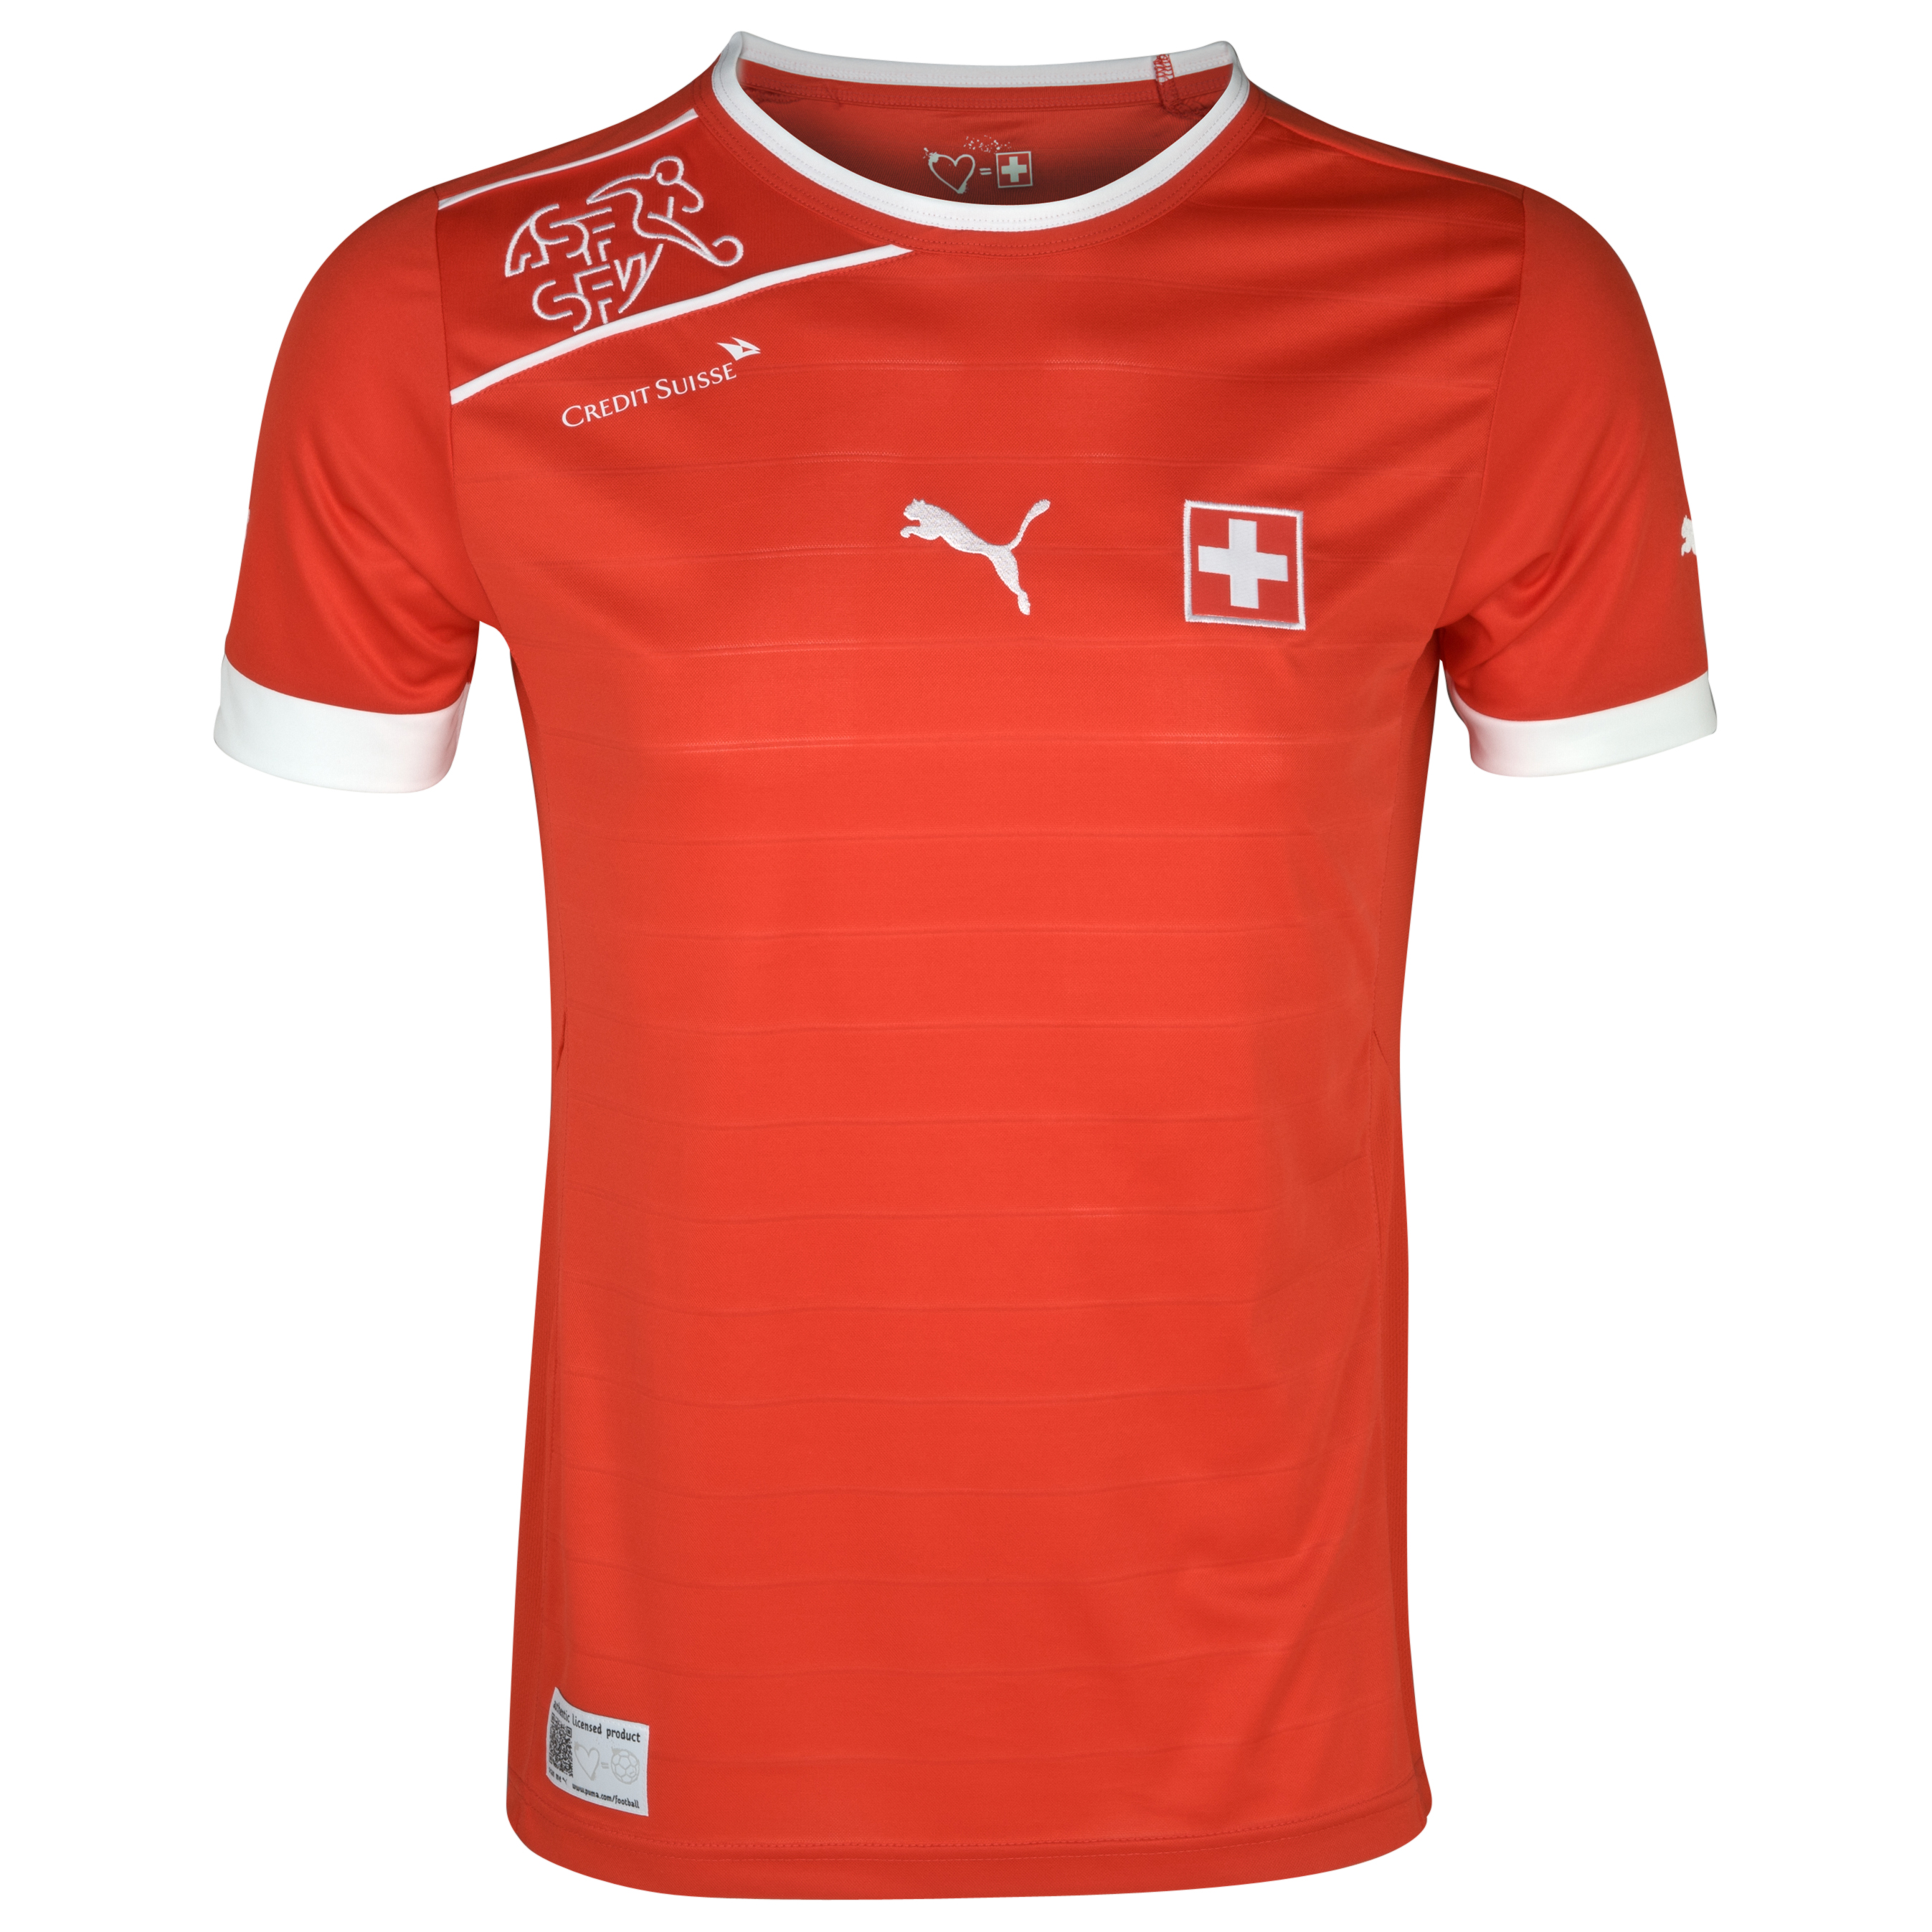 Switzerland Home Shirt Replica - Puma Red/White